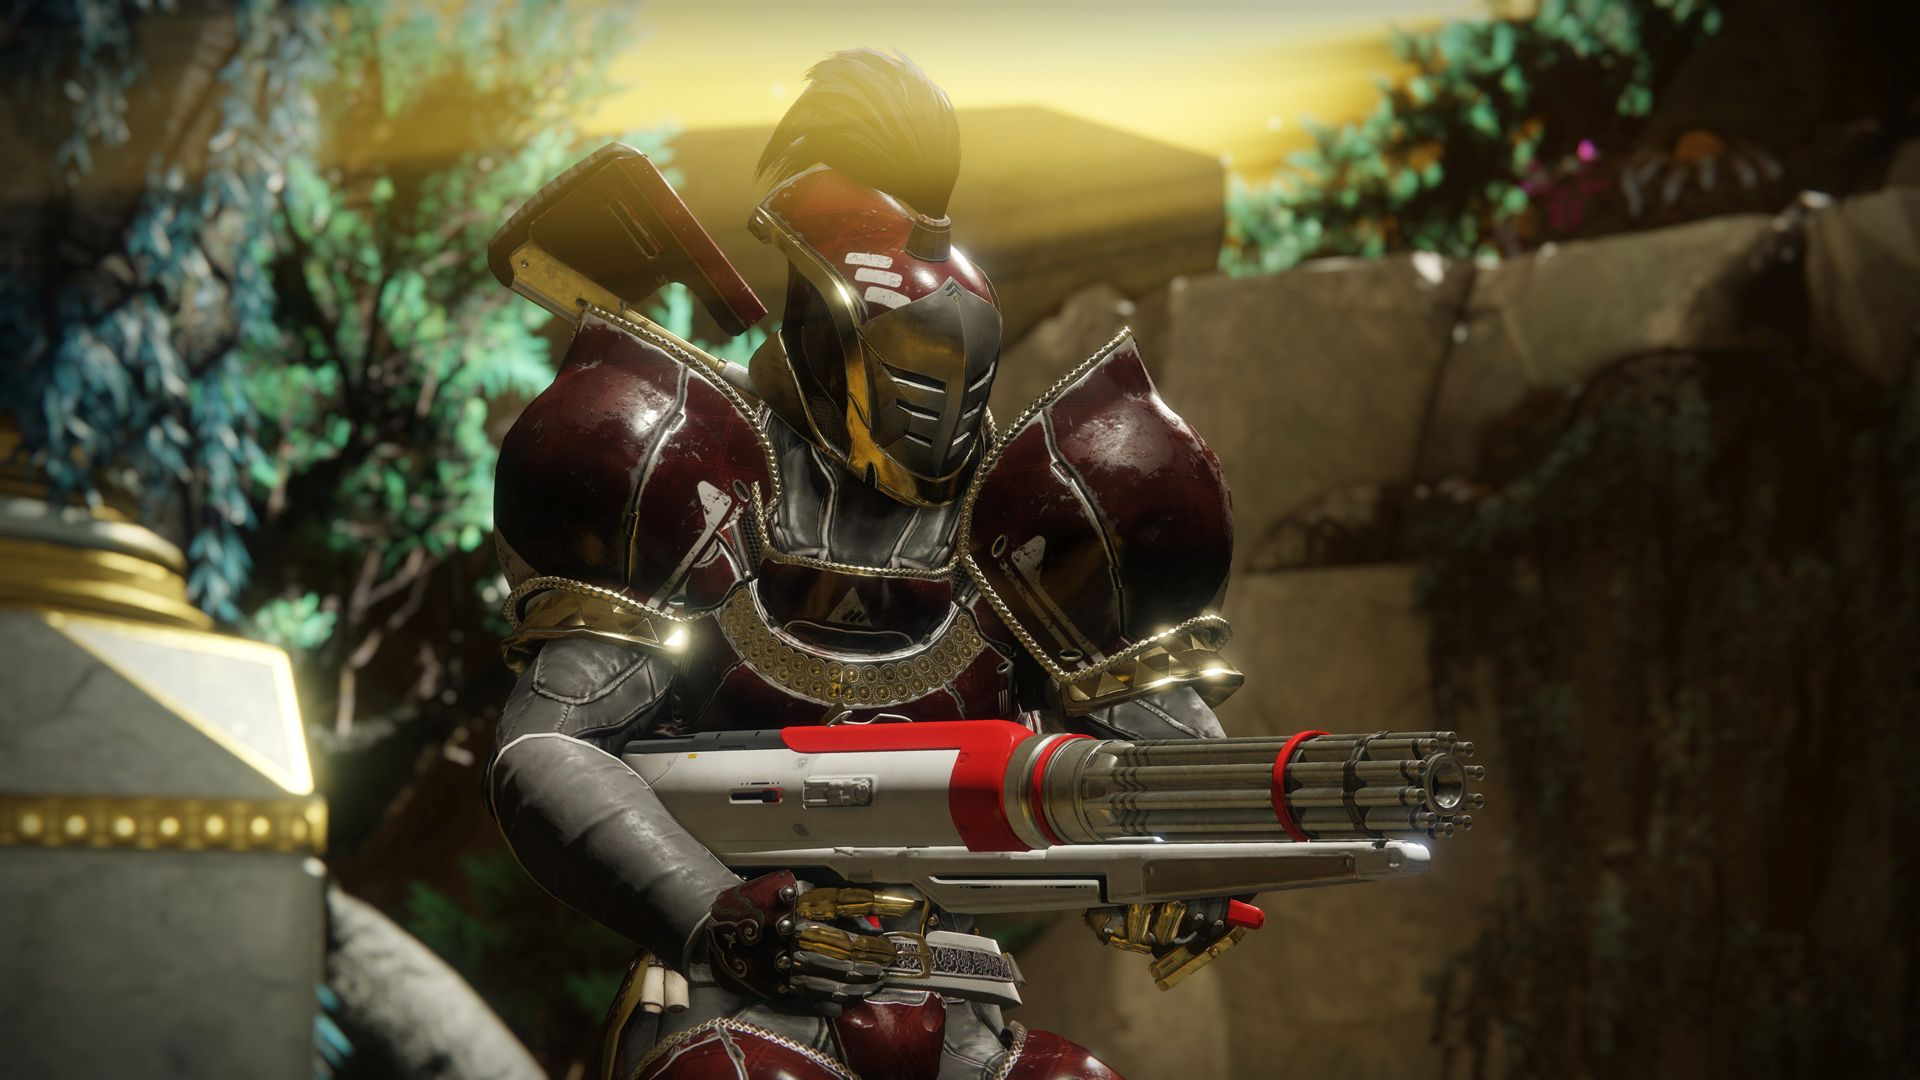 Screenshot de Destiny 2 sur PC.